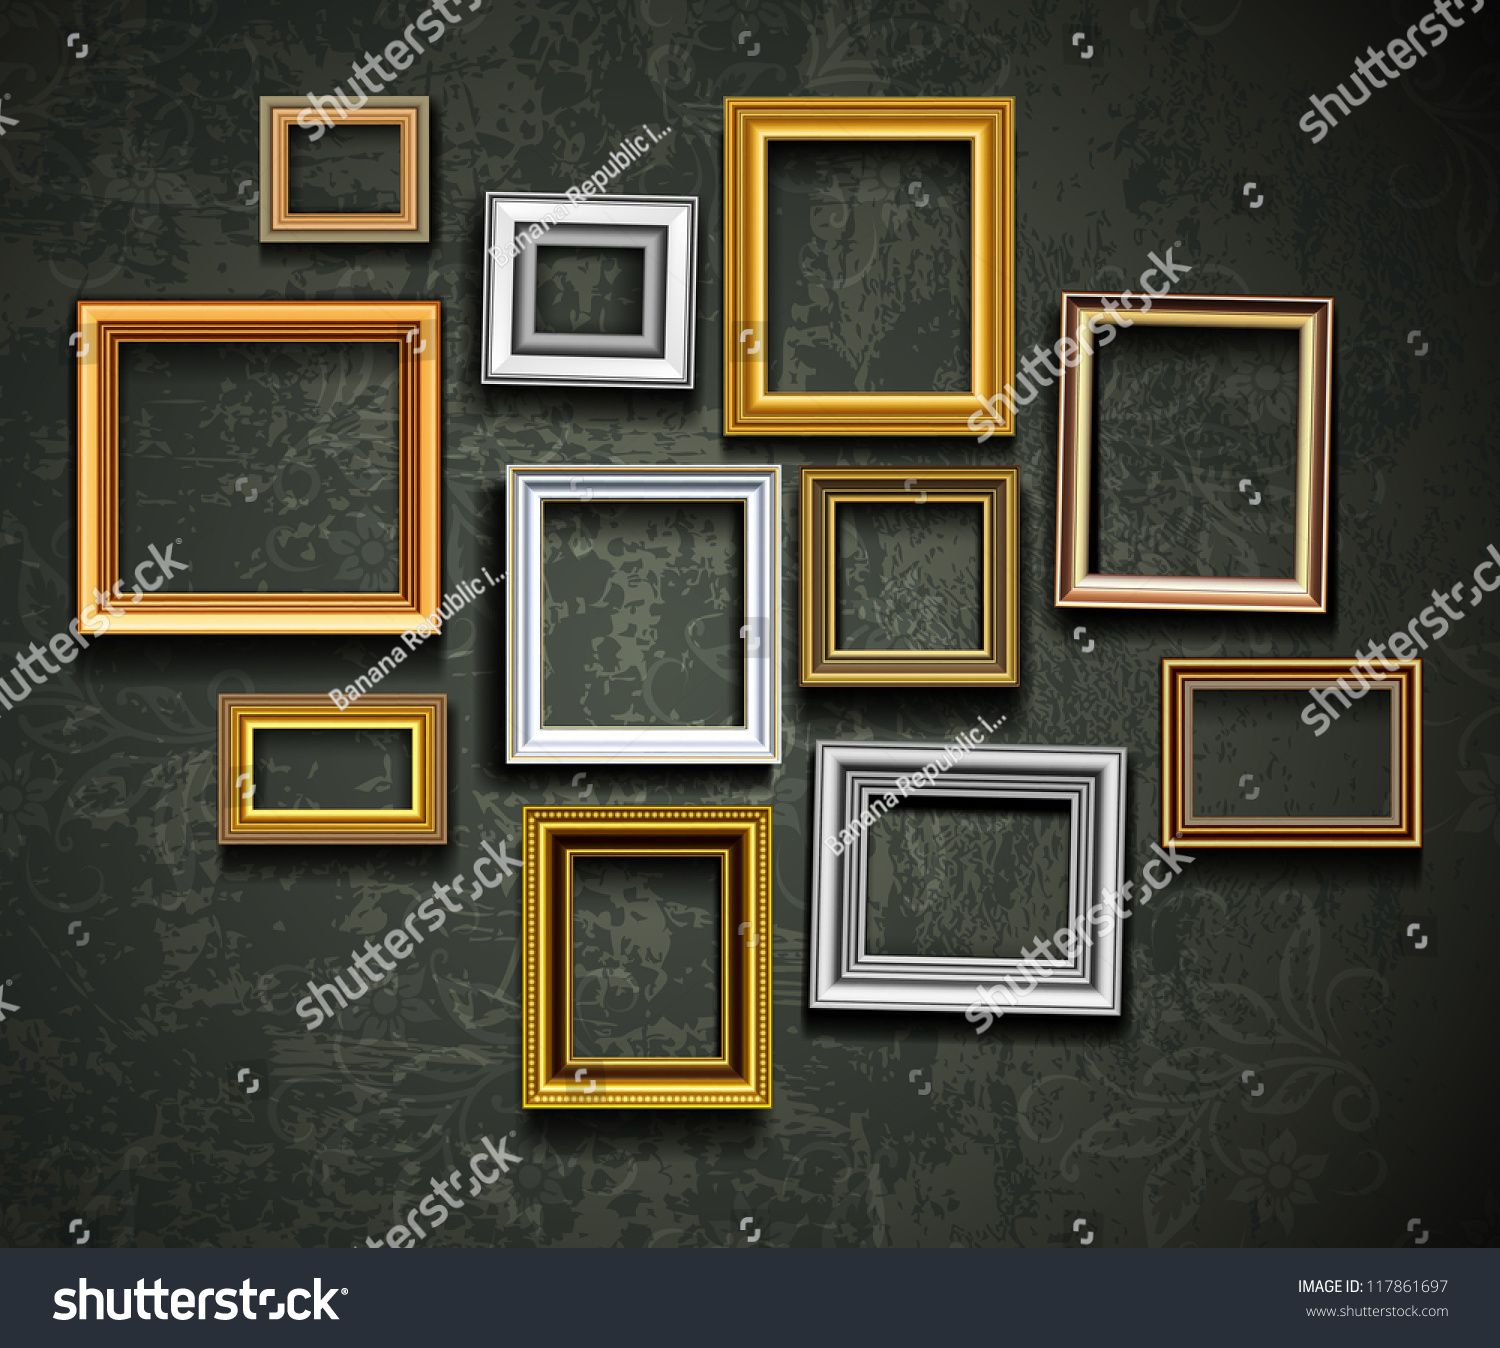 Frame Vector Photo Or Picture Art On Vintage Wall Ad Spon Photo Vector Frame Picture Picture Frame Art Art Gallery Wall Photo Art Gallery